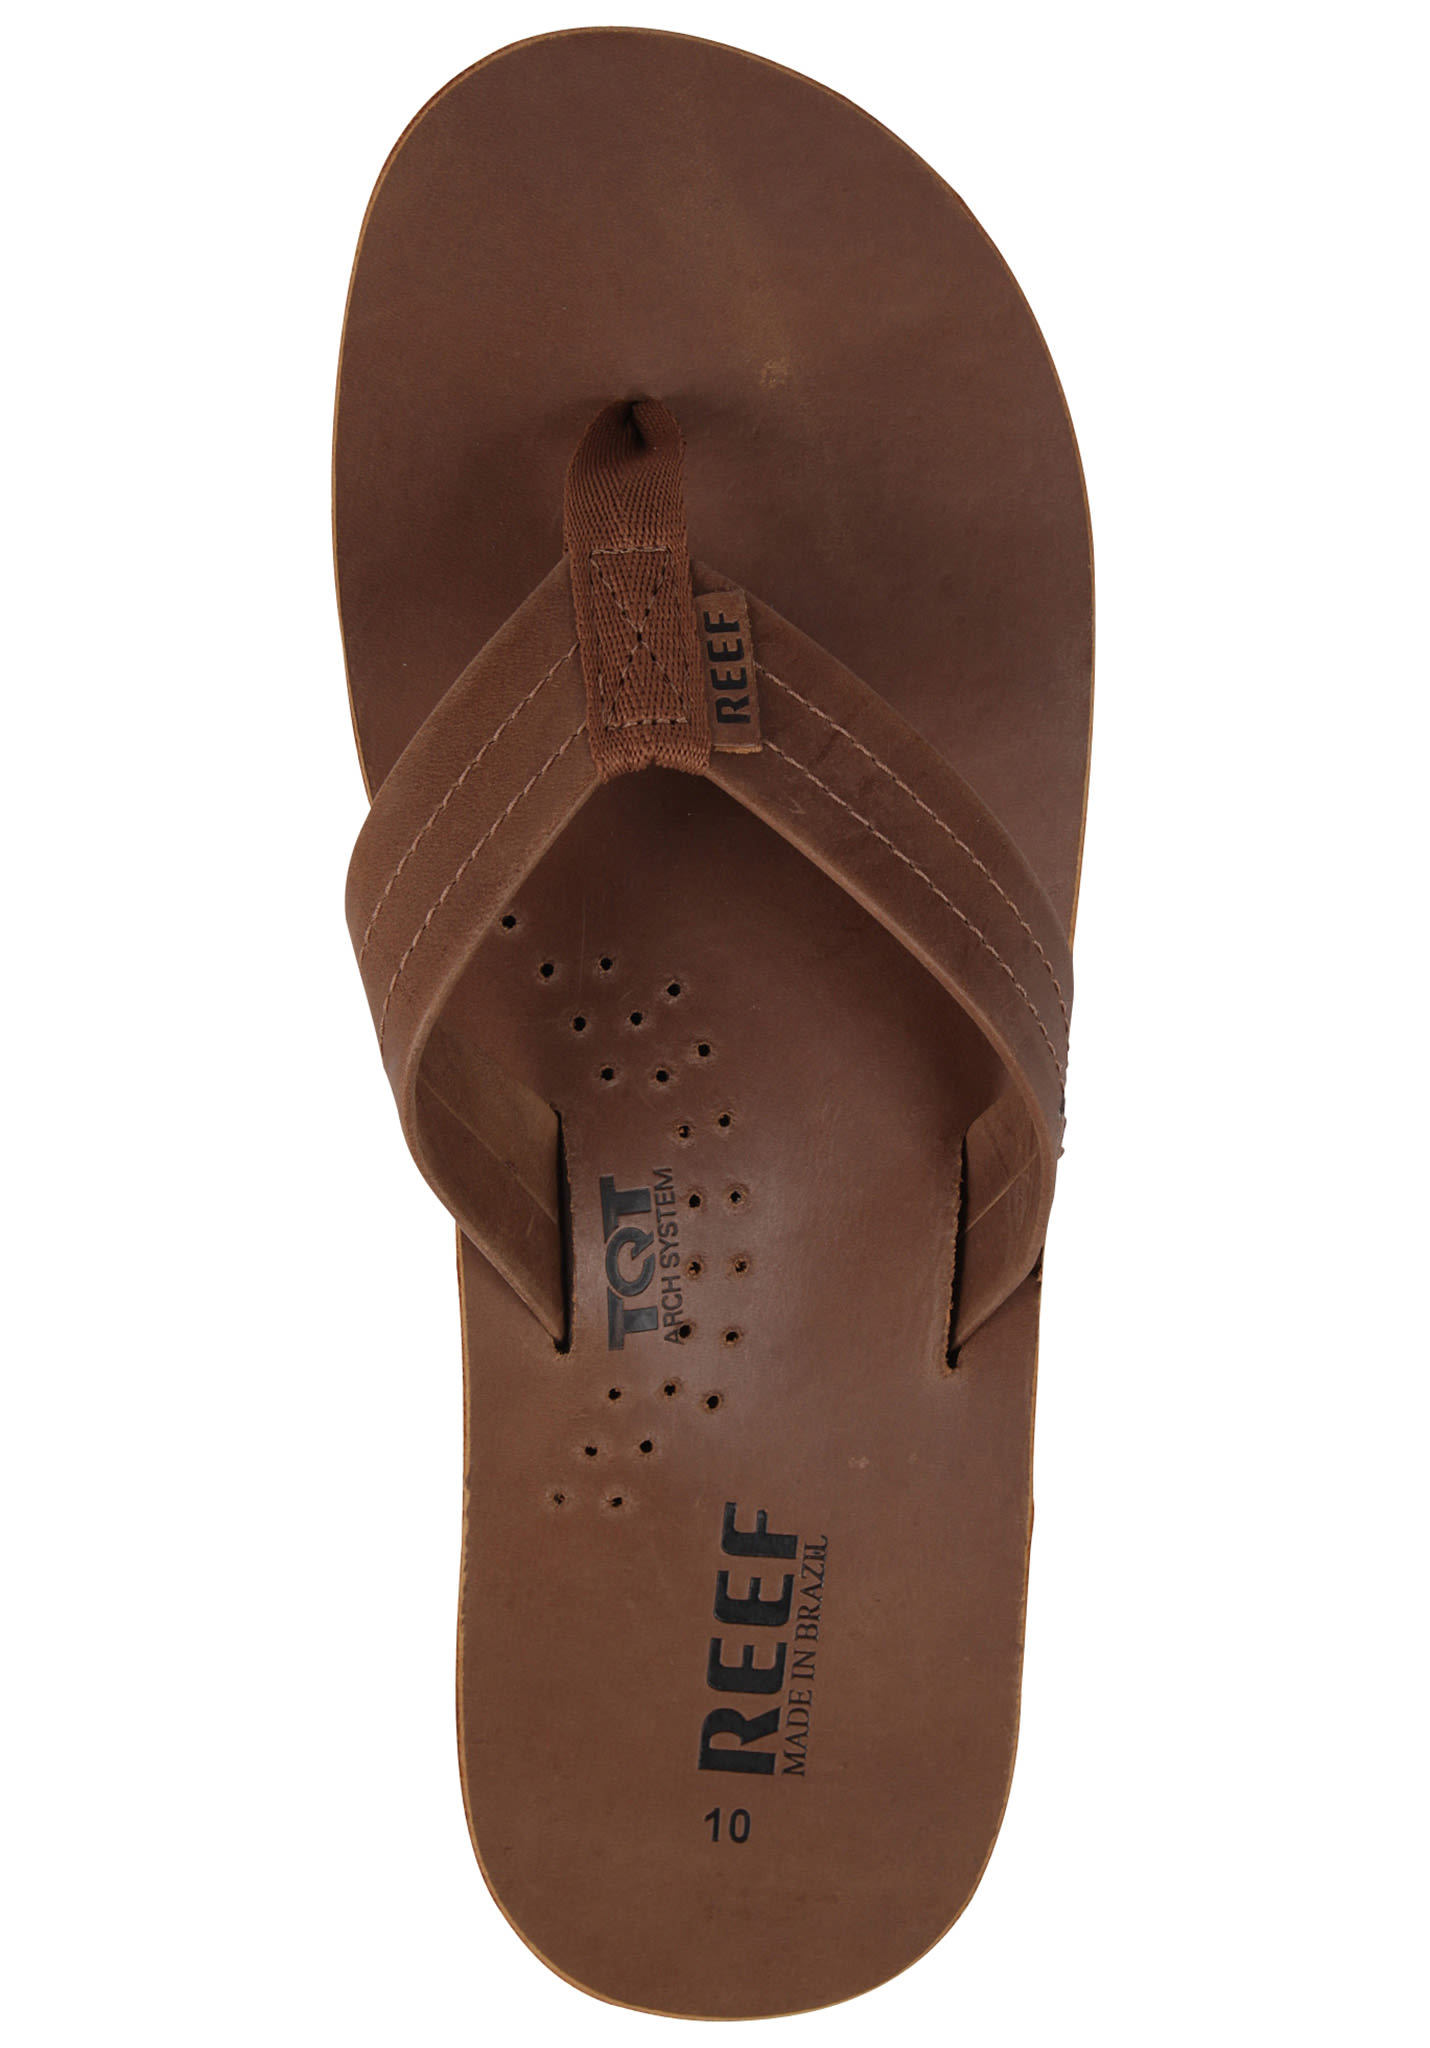 415ffad3d8e2b Reef Draftsmen - Sandals for Men - Brown - Planet Sports